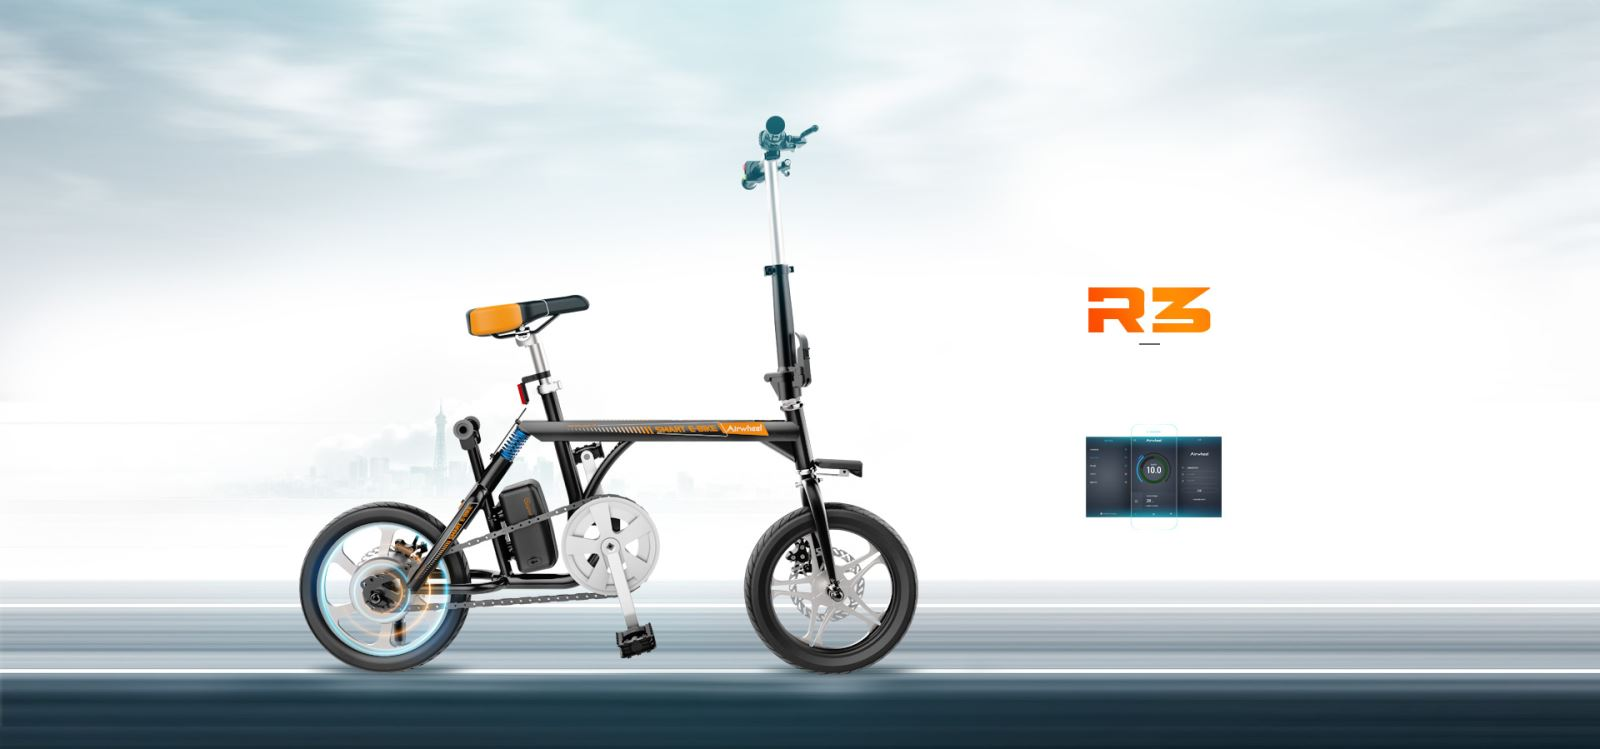 Airwheel R3 City electric Bike.